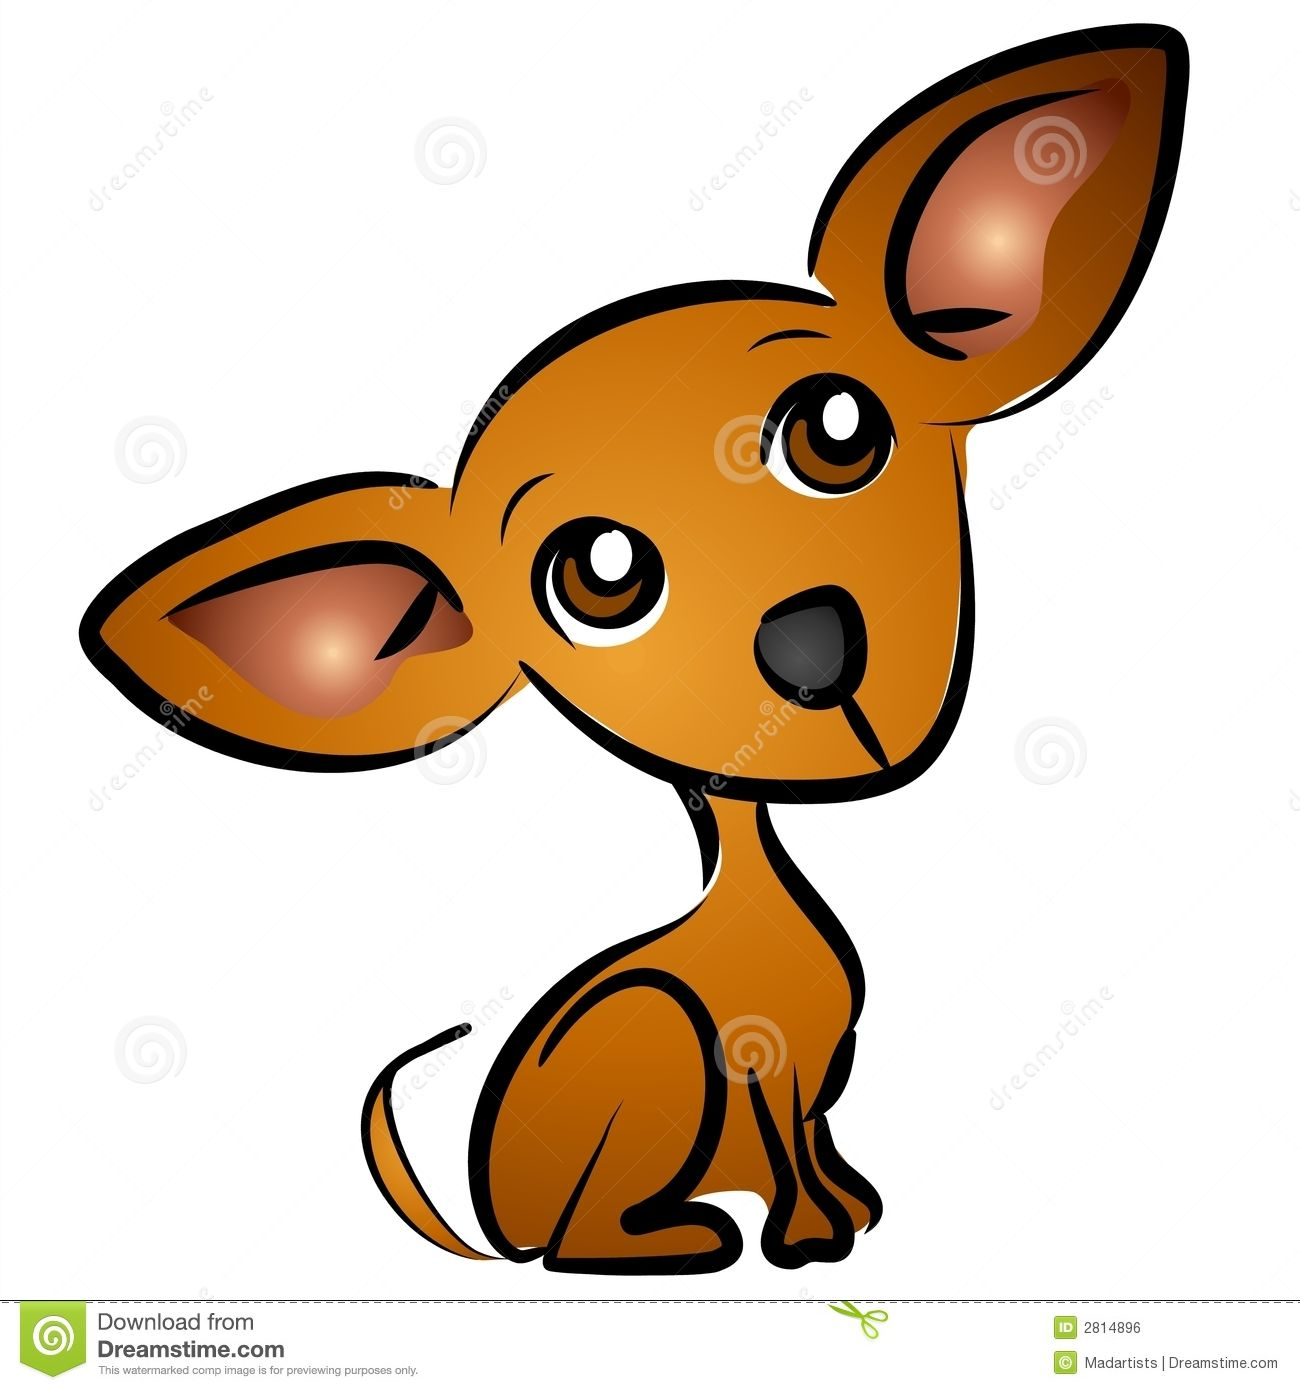 Sad puppy eyes clipart picture library stock Sad eyes dog puppy clip art royalty free stock image image 6 ... picture library stock